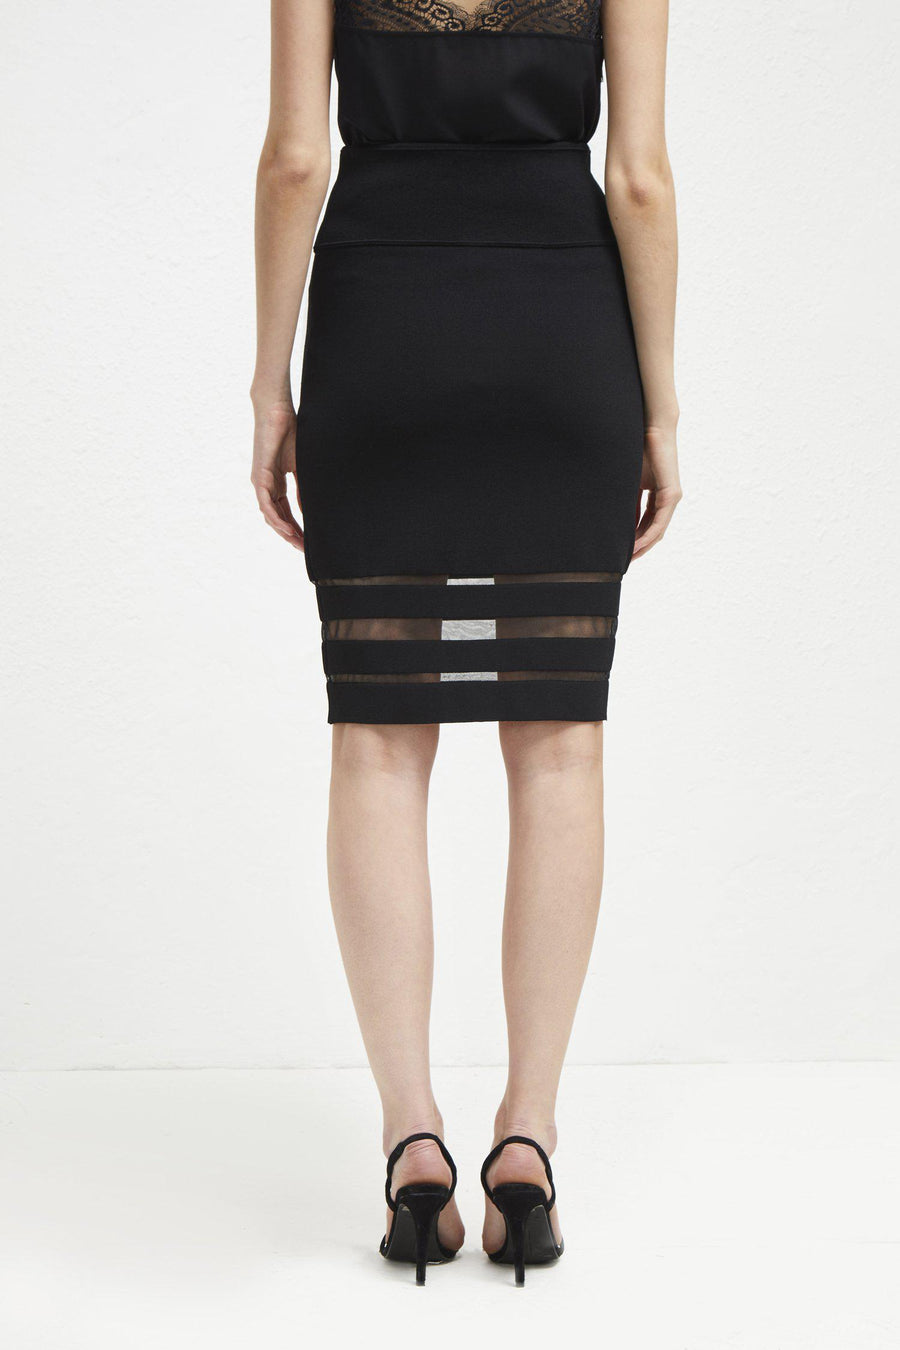 Skirts Kara Crepe Mesh Insert Pencil Skirt French Connection Conspiracy New York